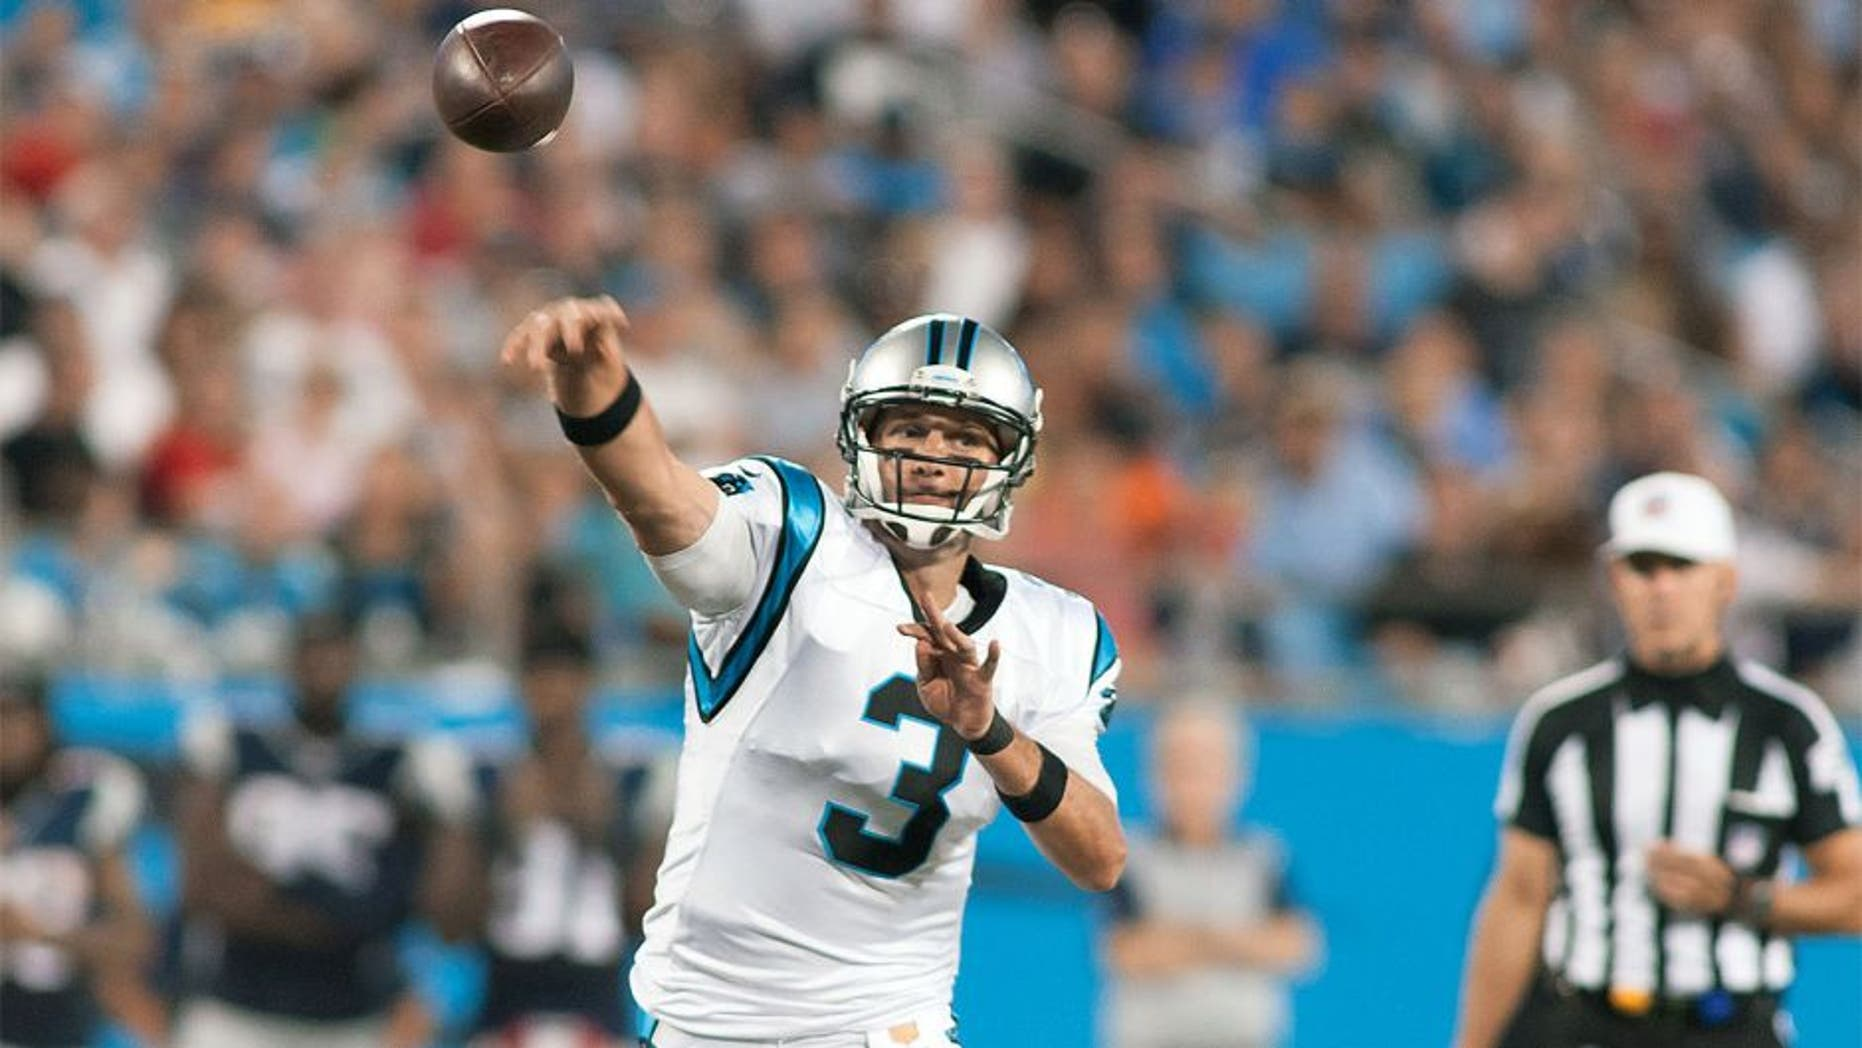 Aug 28, 2015; Charlotte, NC, USA; Carolina Panthers quarterback Derek Anderson (3) throws a pass during the third quarter against the New England Patriots at Bank of America Stadium. The Patriots defeated the Panthers 17-16. Mandatory Credit: Jeremy Brevard-USA TODAY Sports